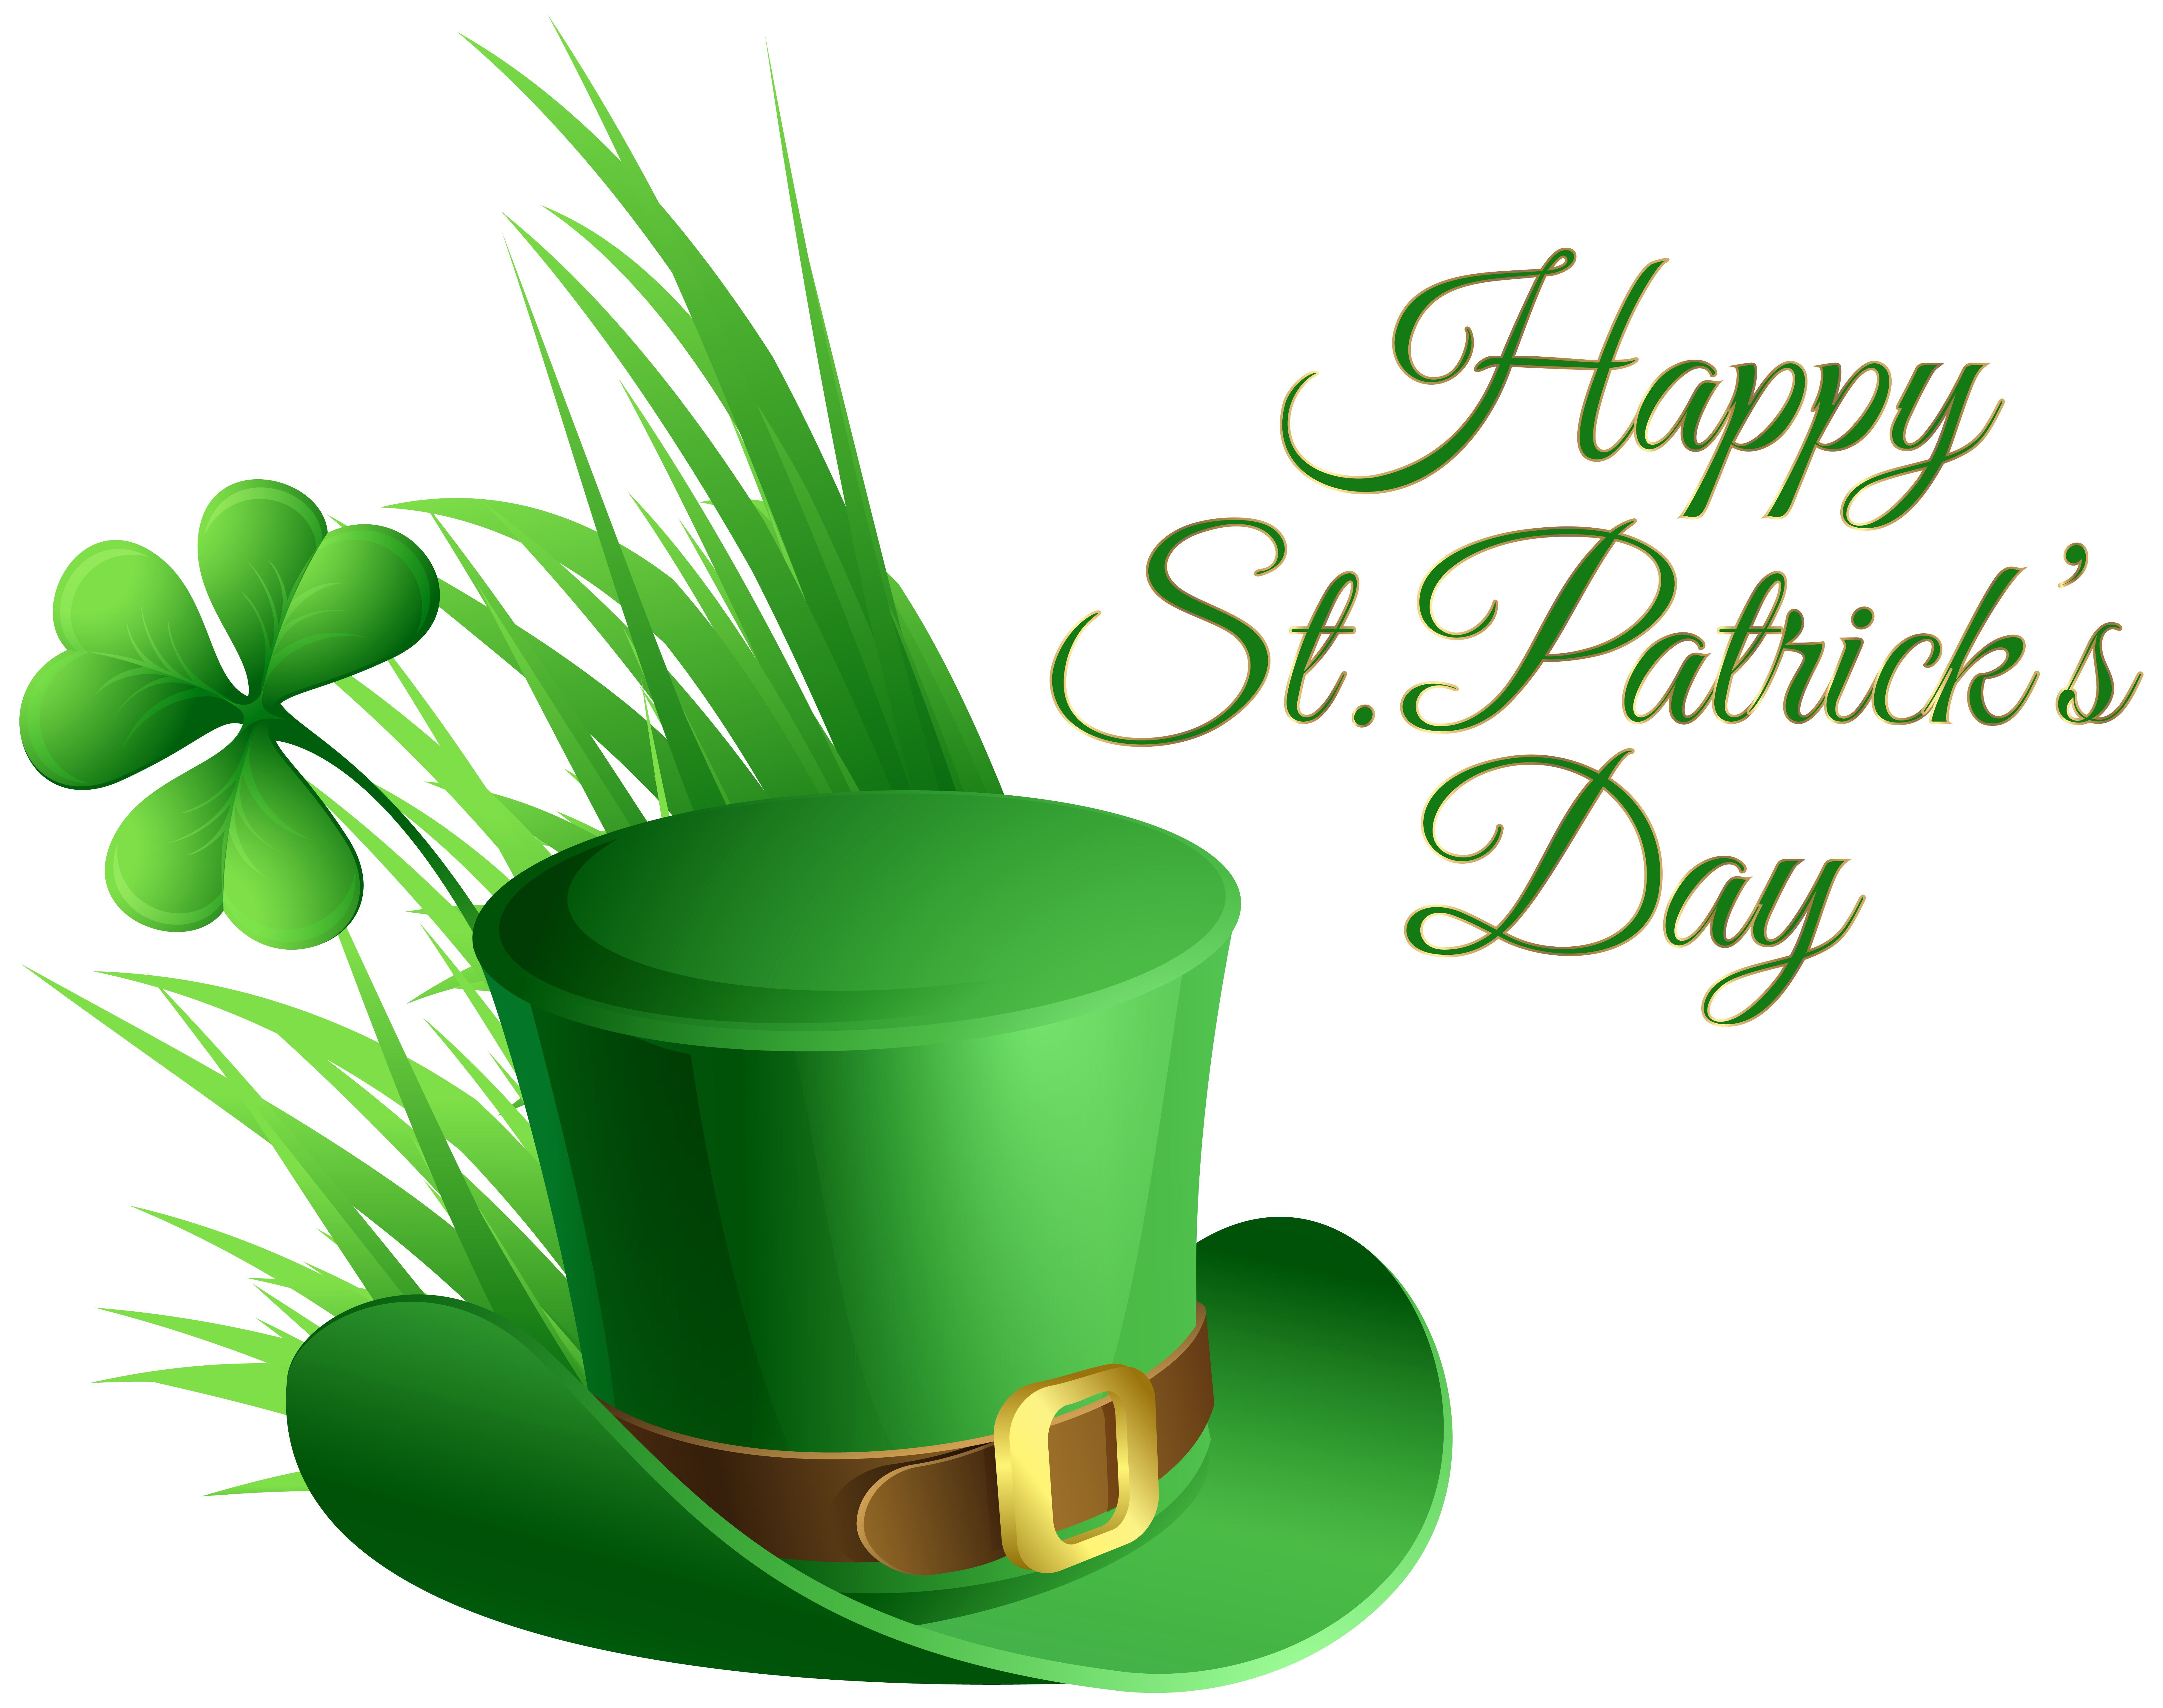 Rosa, Hat, Green St Patrick Day Clip Art